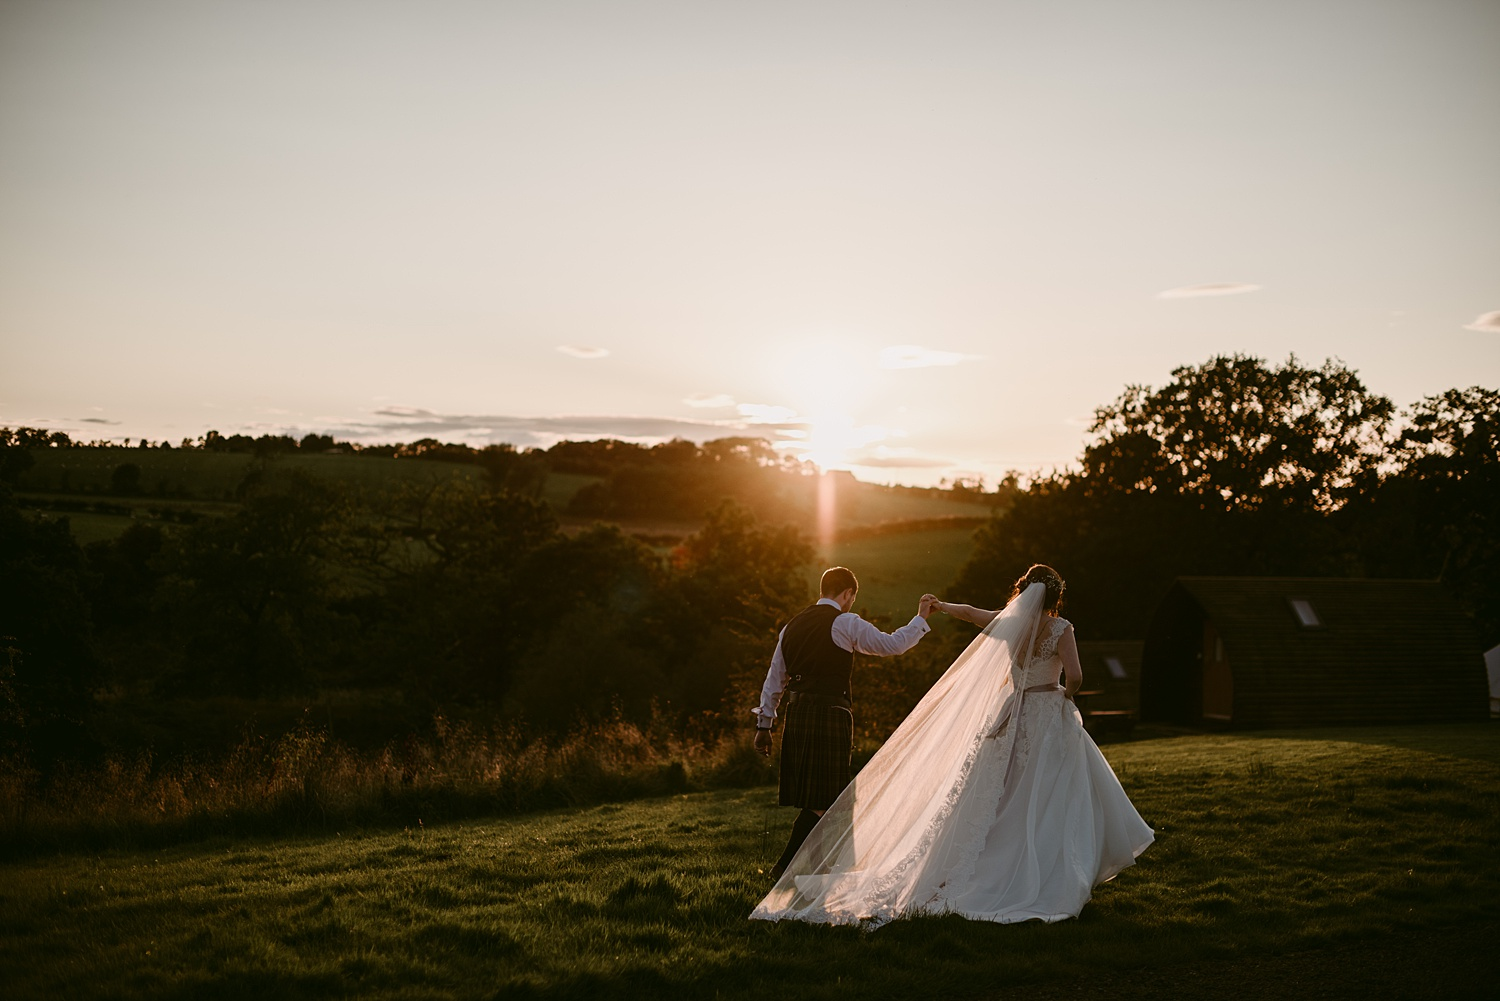 Claire-Fleck-Scottish-wedding-photography-2017__0013.jpg